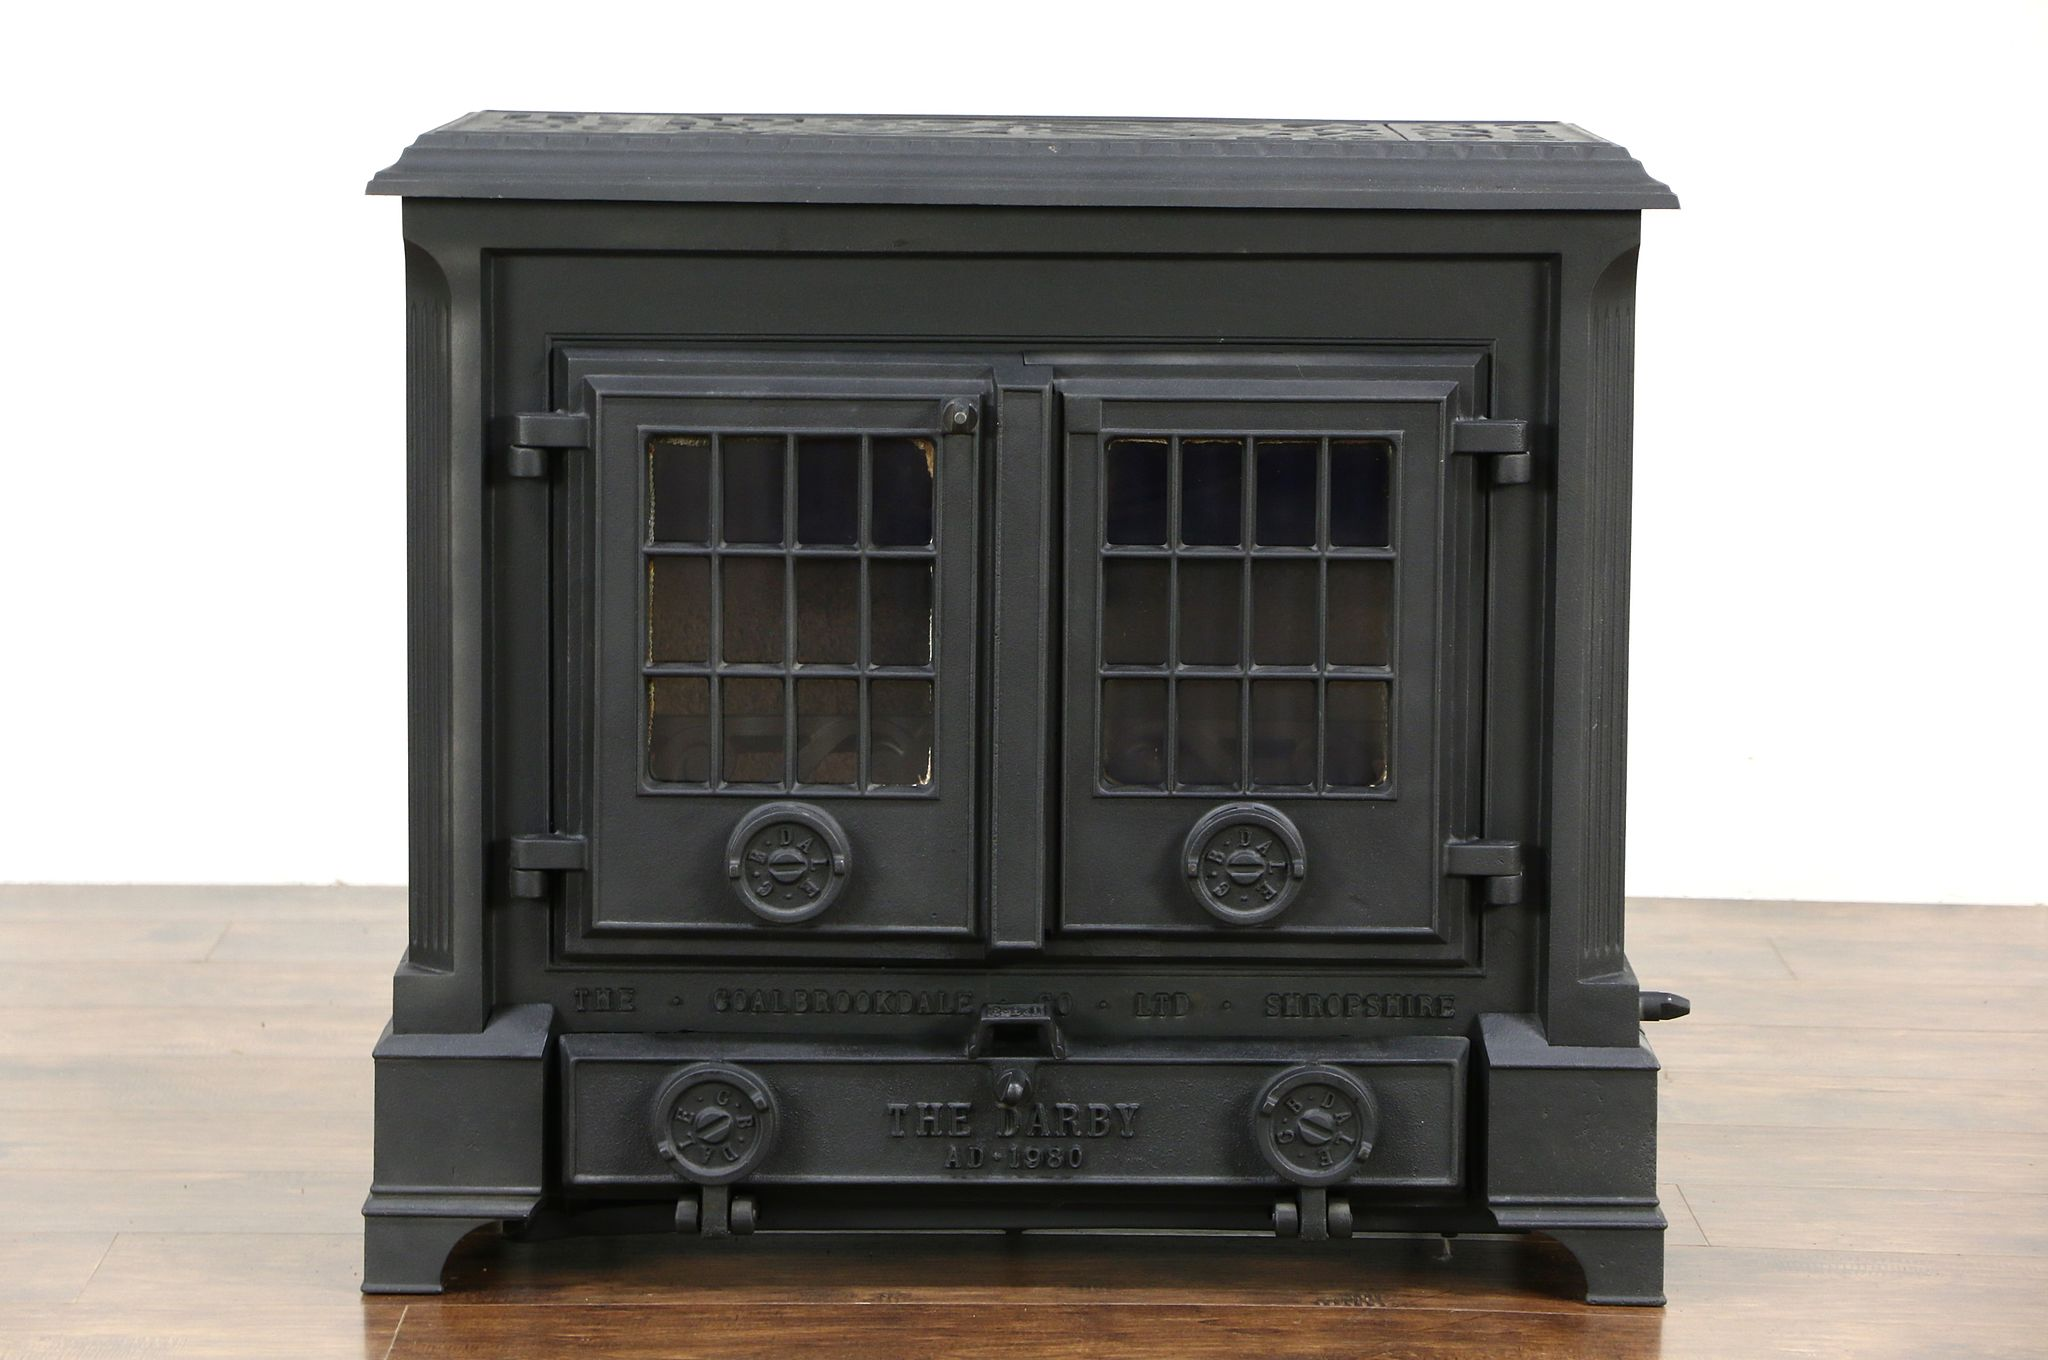 Sold coalbrookdale signed darby 1980 english iron wood stove coalbrookdale signed darby 1980 english iron wood stove glass doors planetlyrics Image collections